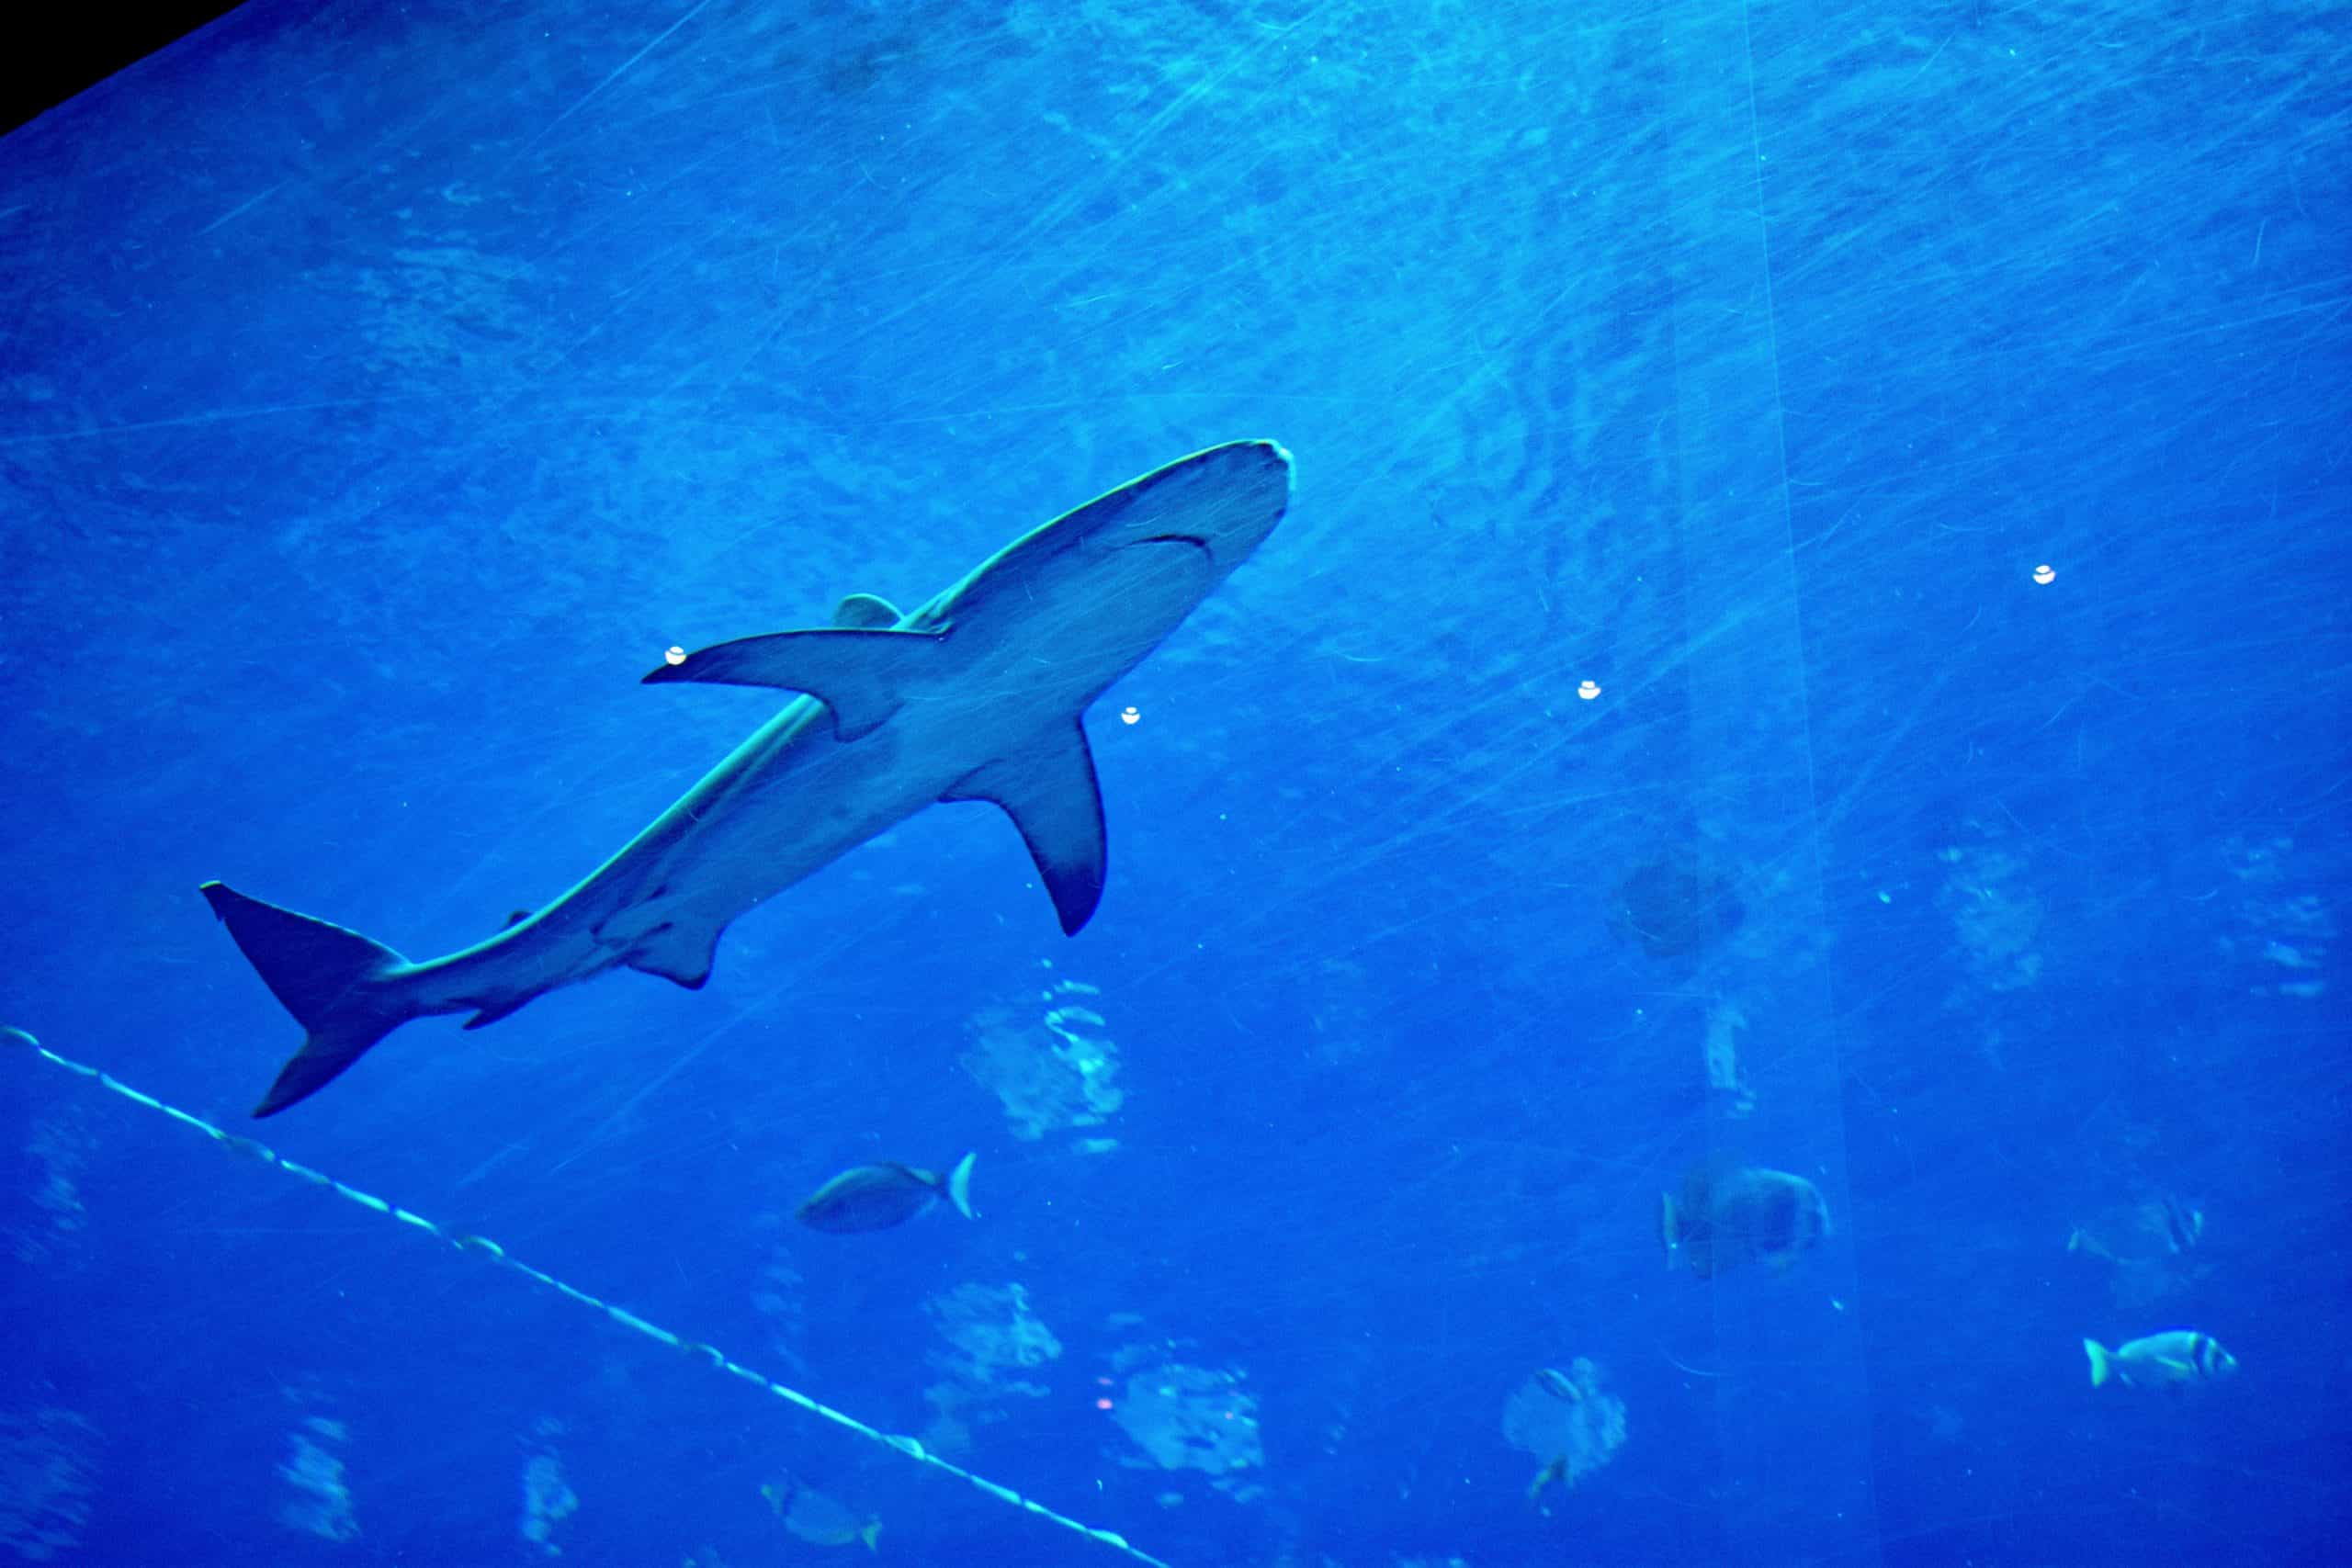 Shark Fishing: Catch Fish For Dinner With A Shark